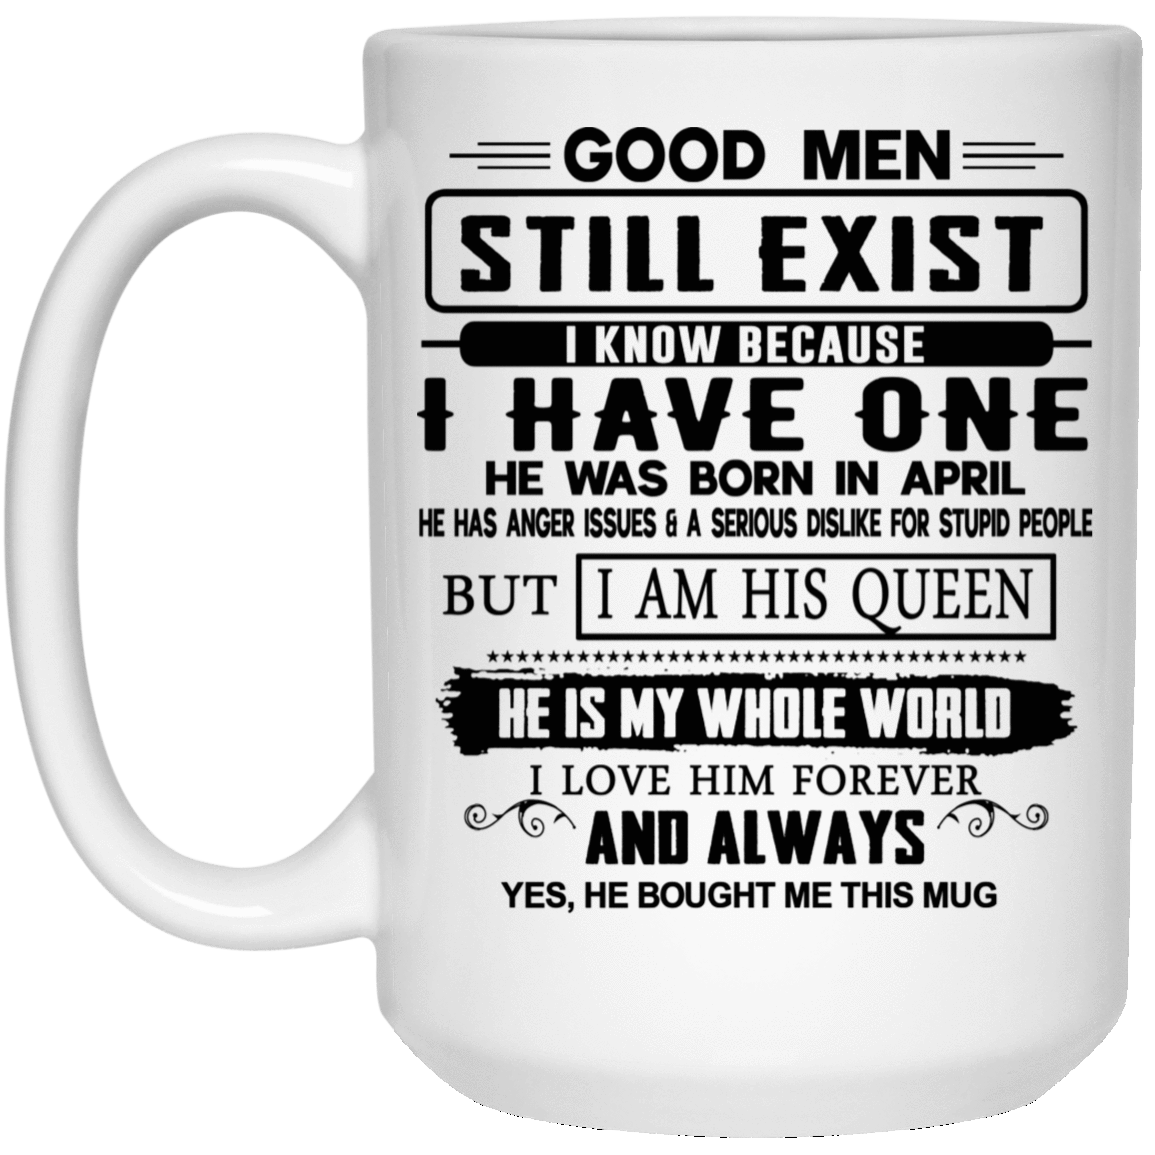 Good Men Still Exist I Have One He Was Born In April Mug 1032-9816-76399511-47456 - Tee Ript